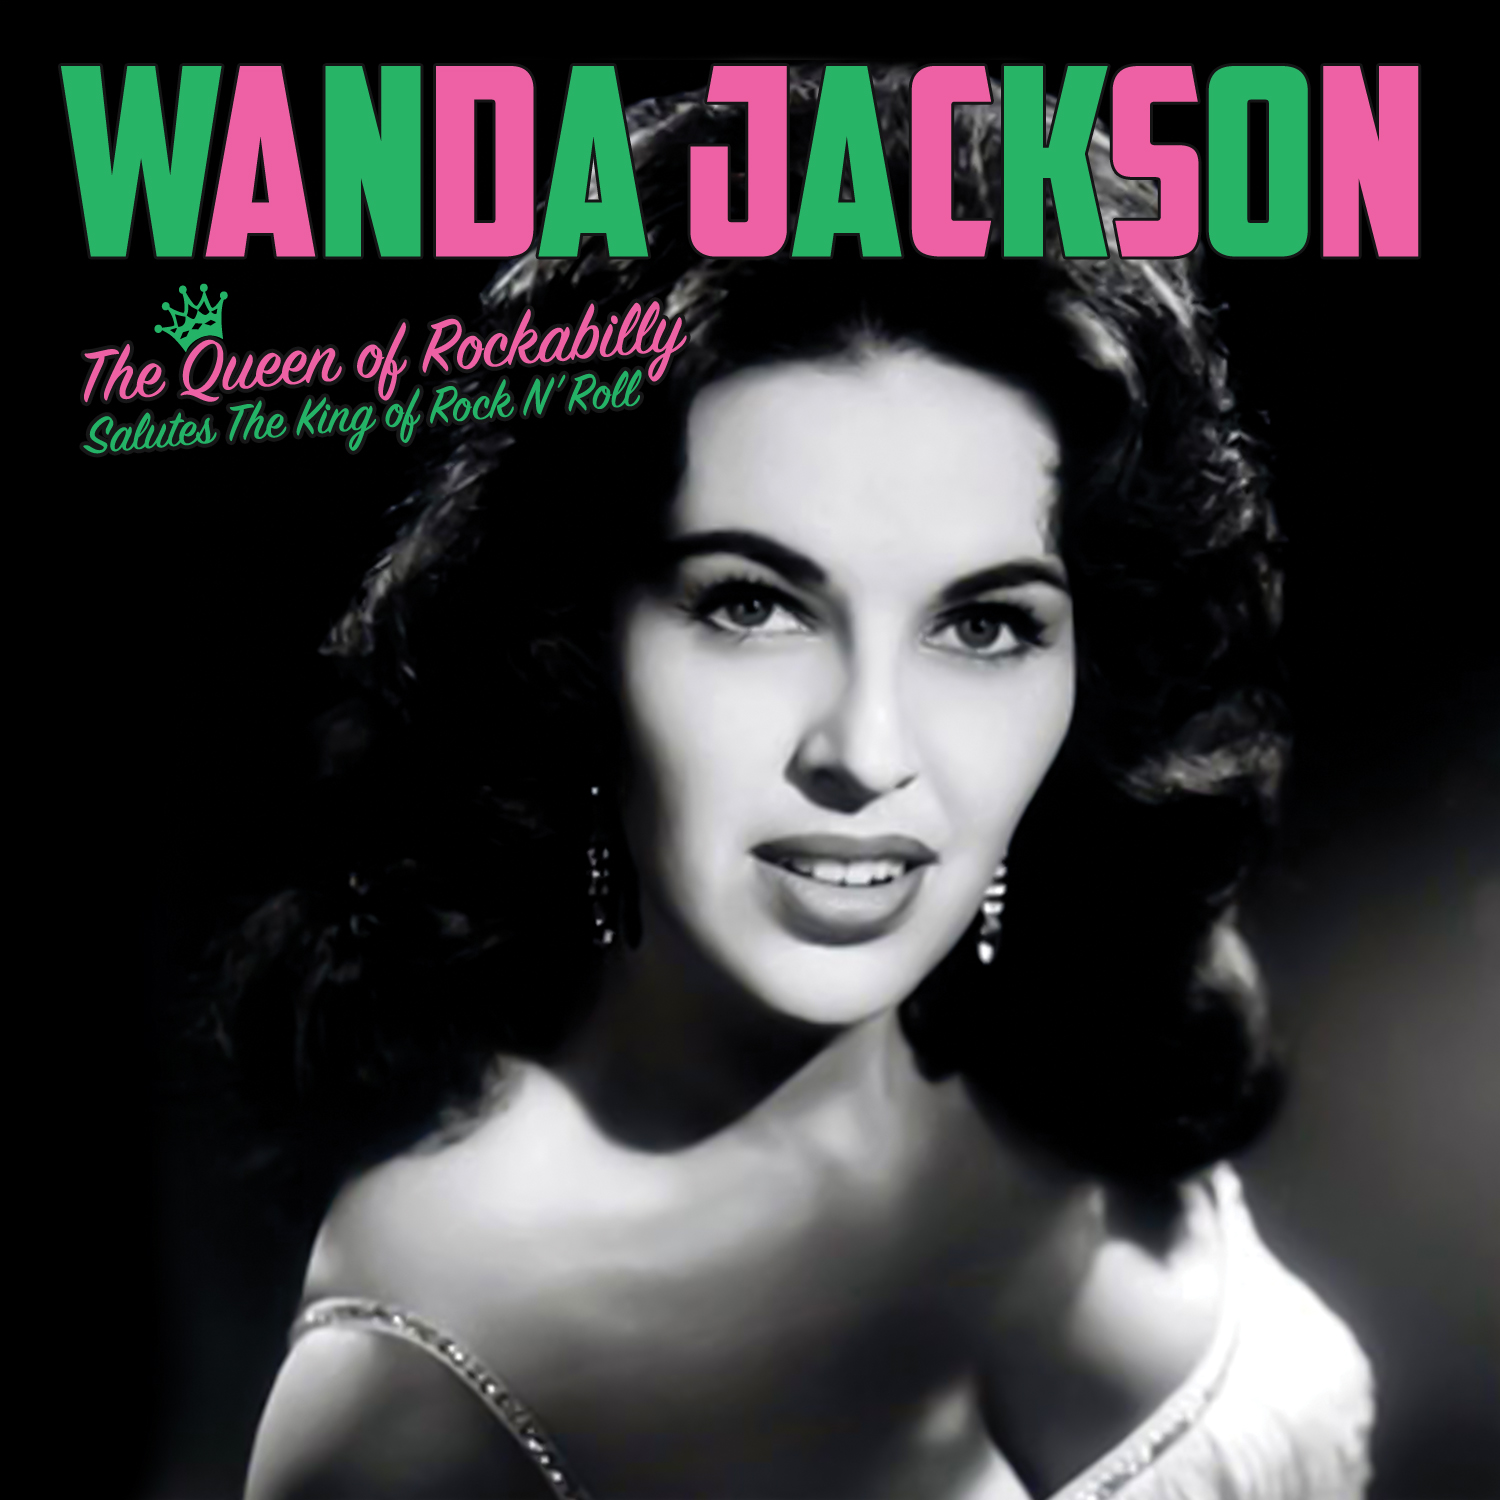 Wanda Jackson The Queen Of Rockabilly Salutes The King